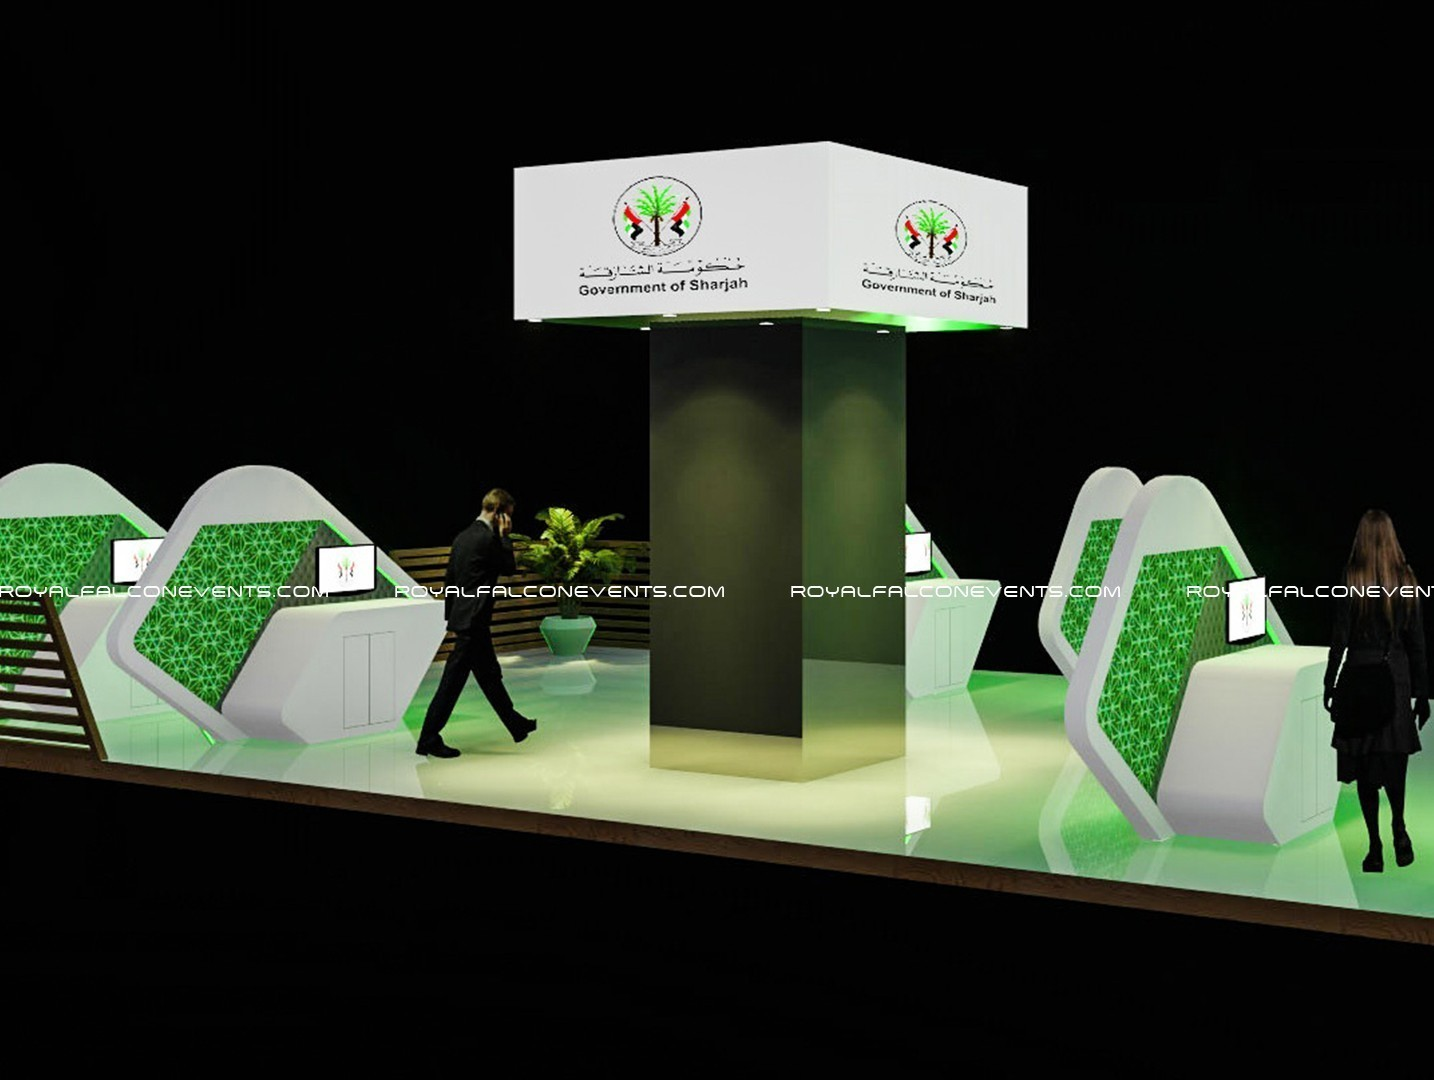 Exhibition Stand Builders Sharjah : Exhibition stand builders in dubai royal falcon events